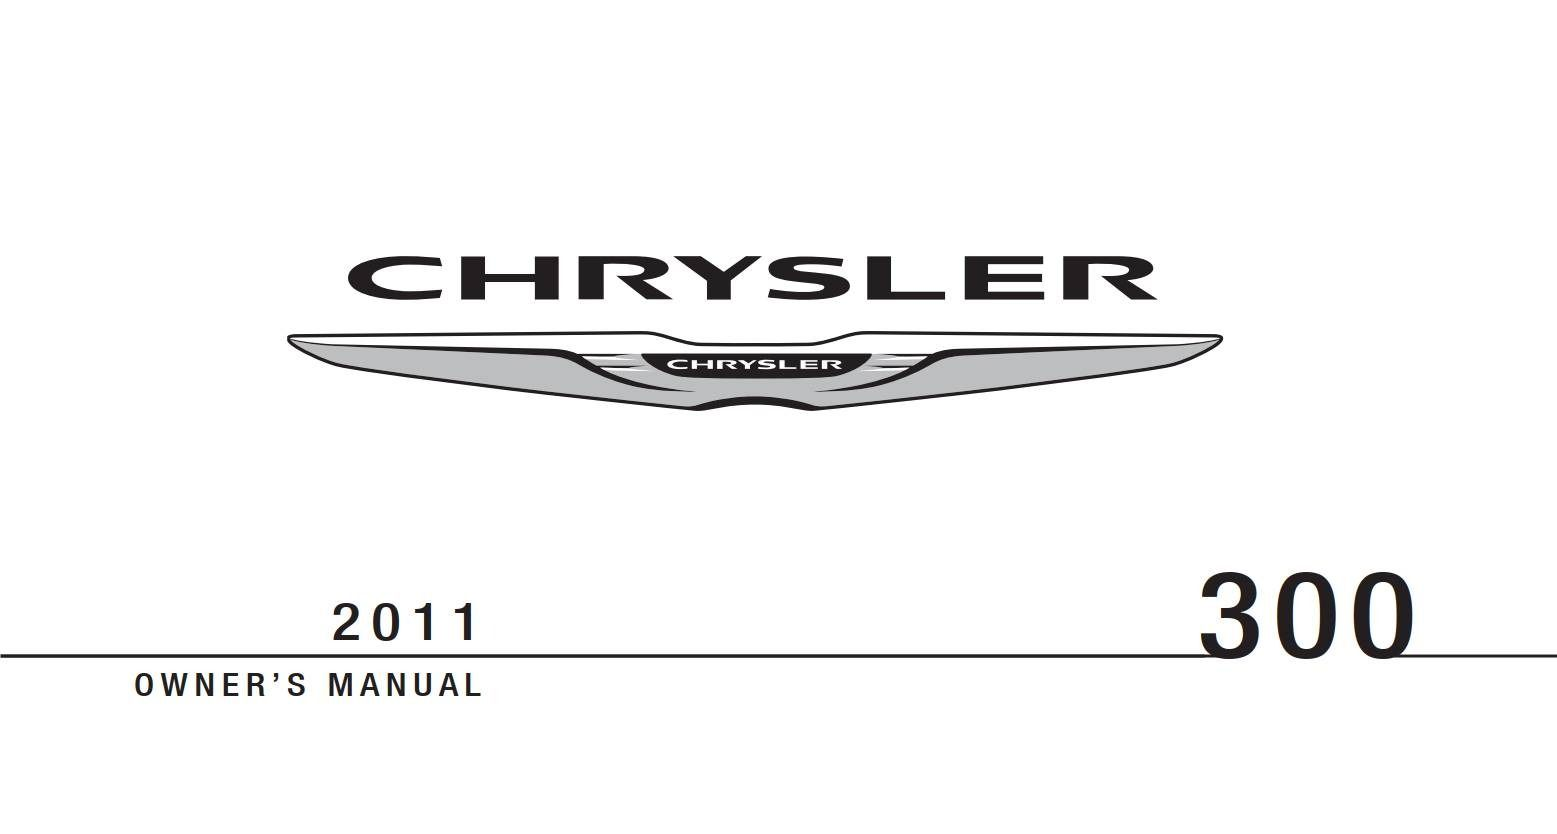 Chrysler 300 2011 Owner's Manual has been published on